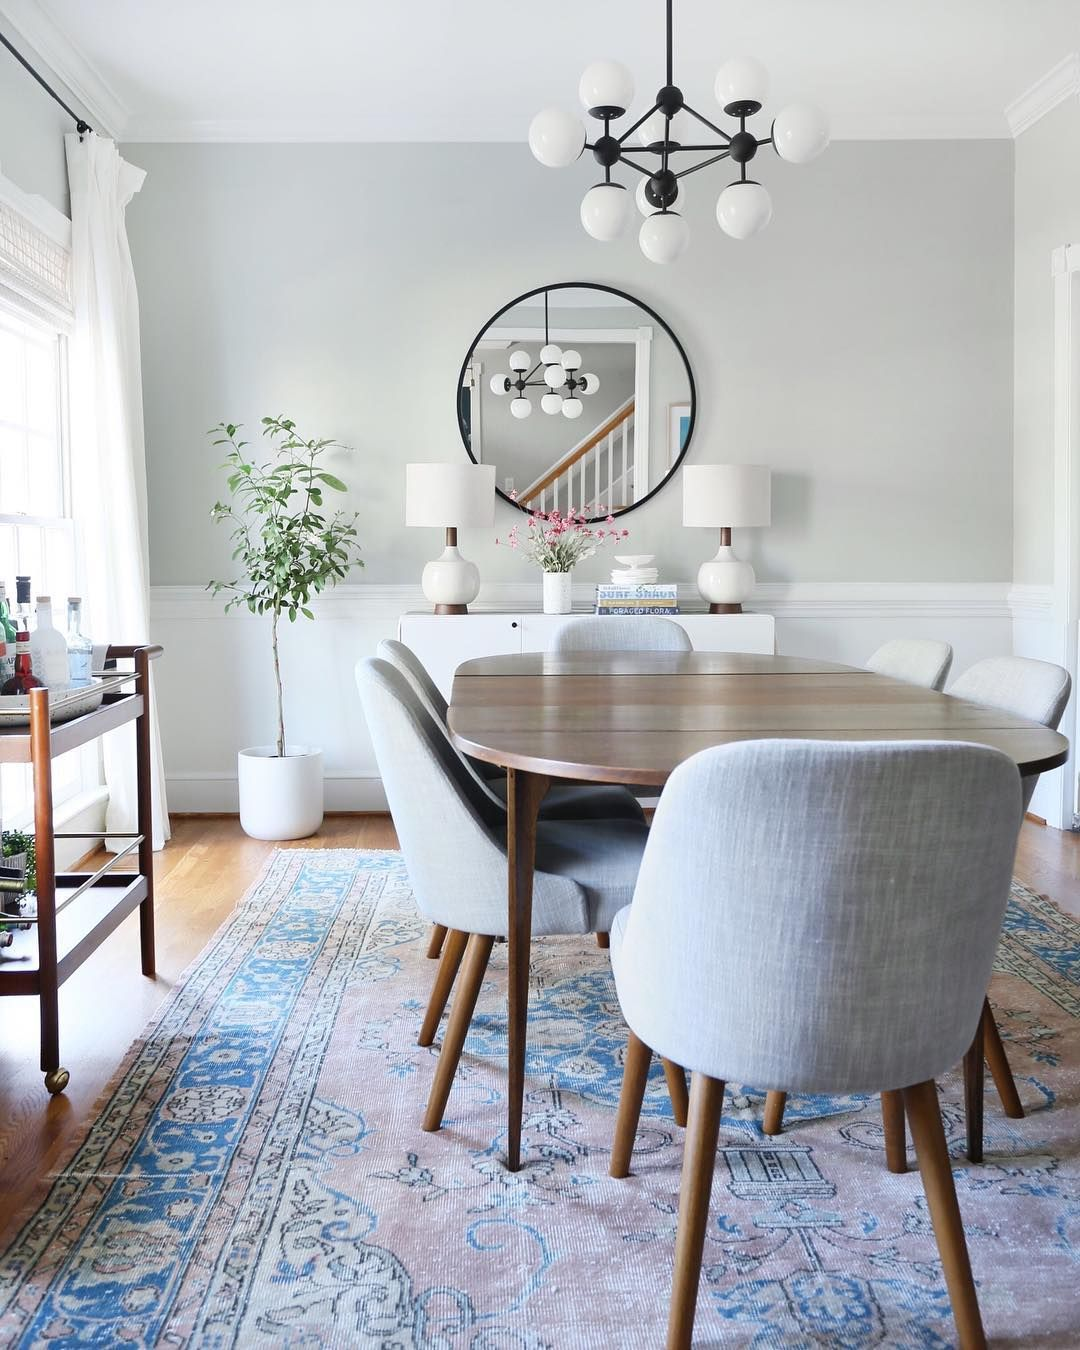 Mid Century Modern Dining Room With Accents Of Blue In A Vintage